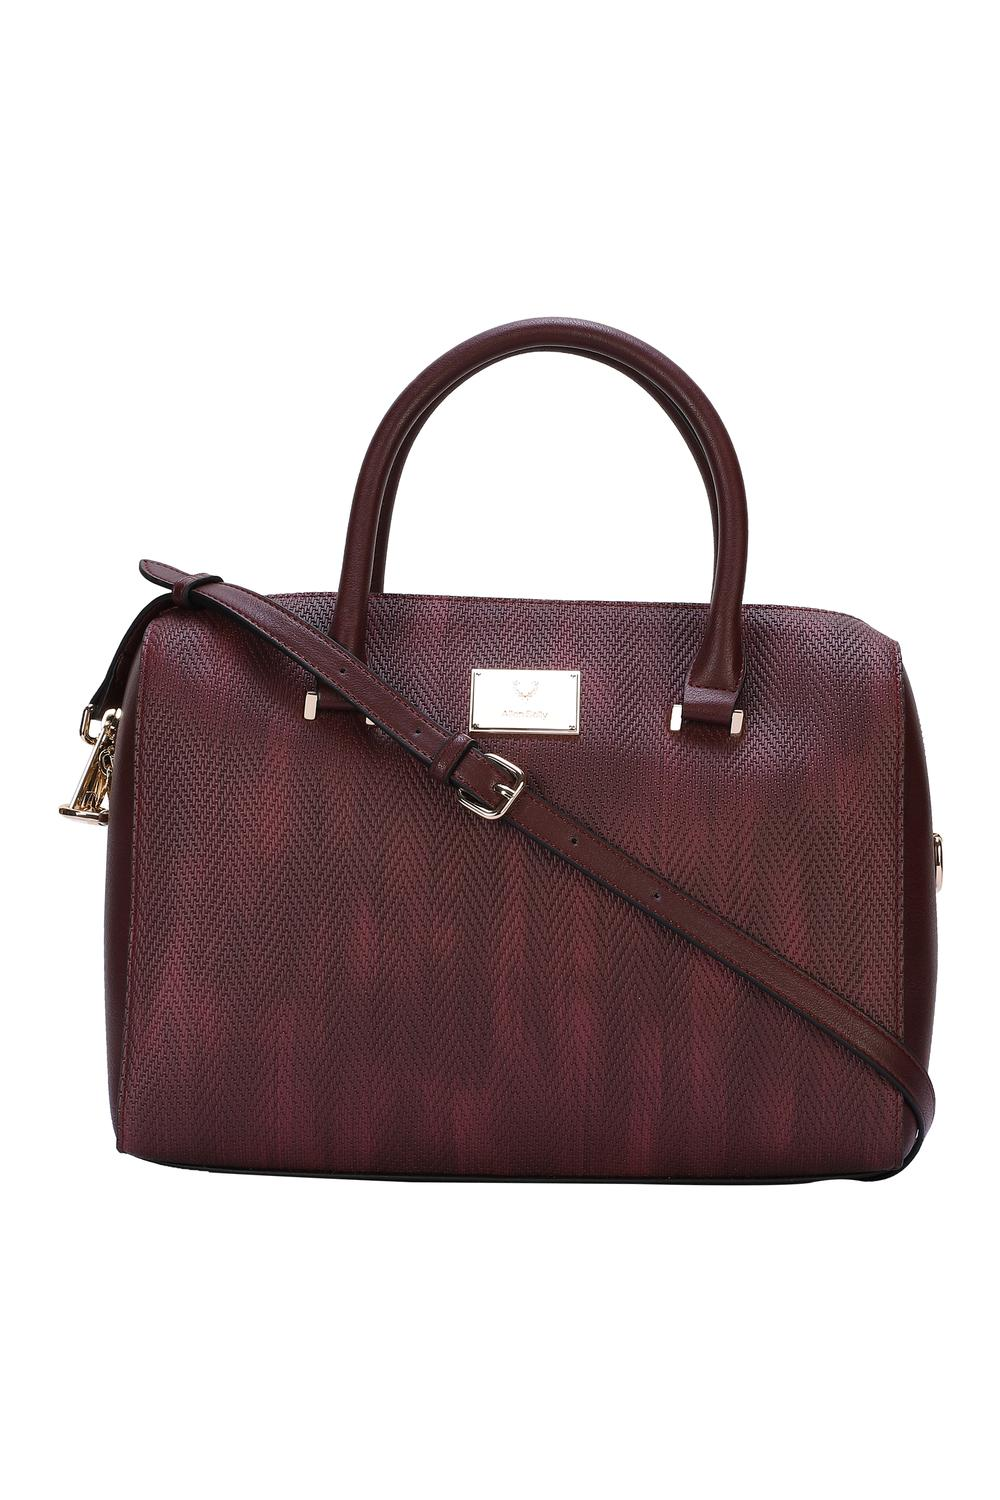 178e32adca Solly Fashion Accessories, Allen Solly Brown Handbag for Women at  Allensolly.com